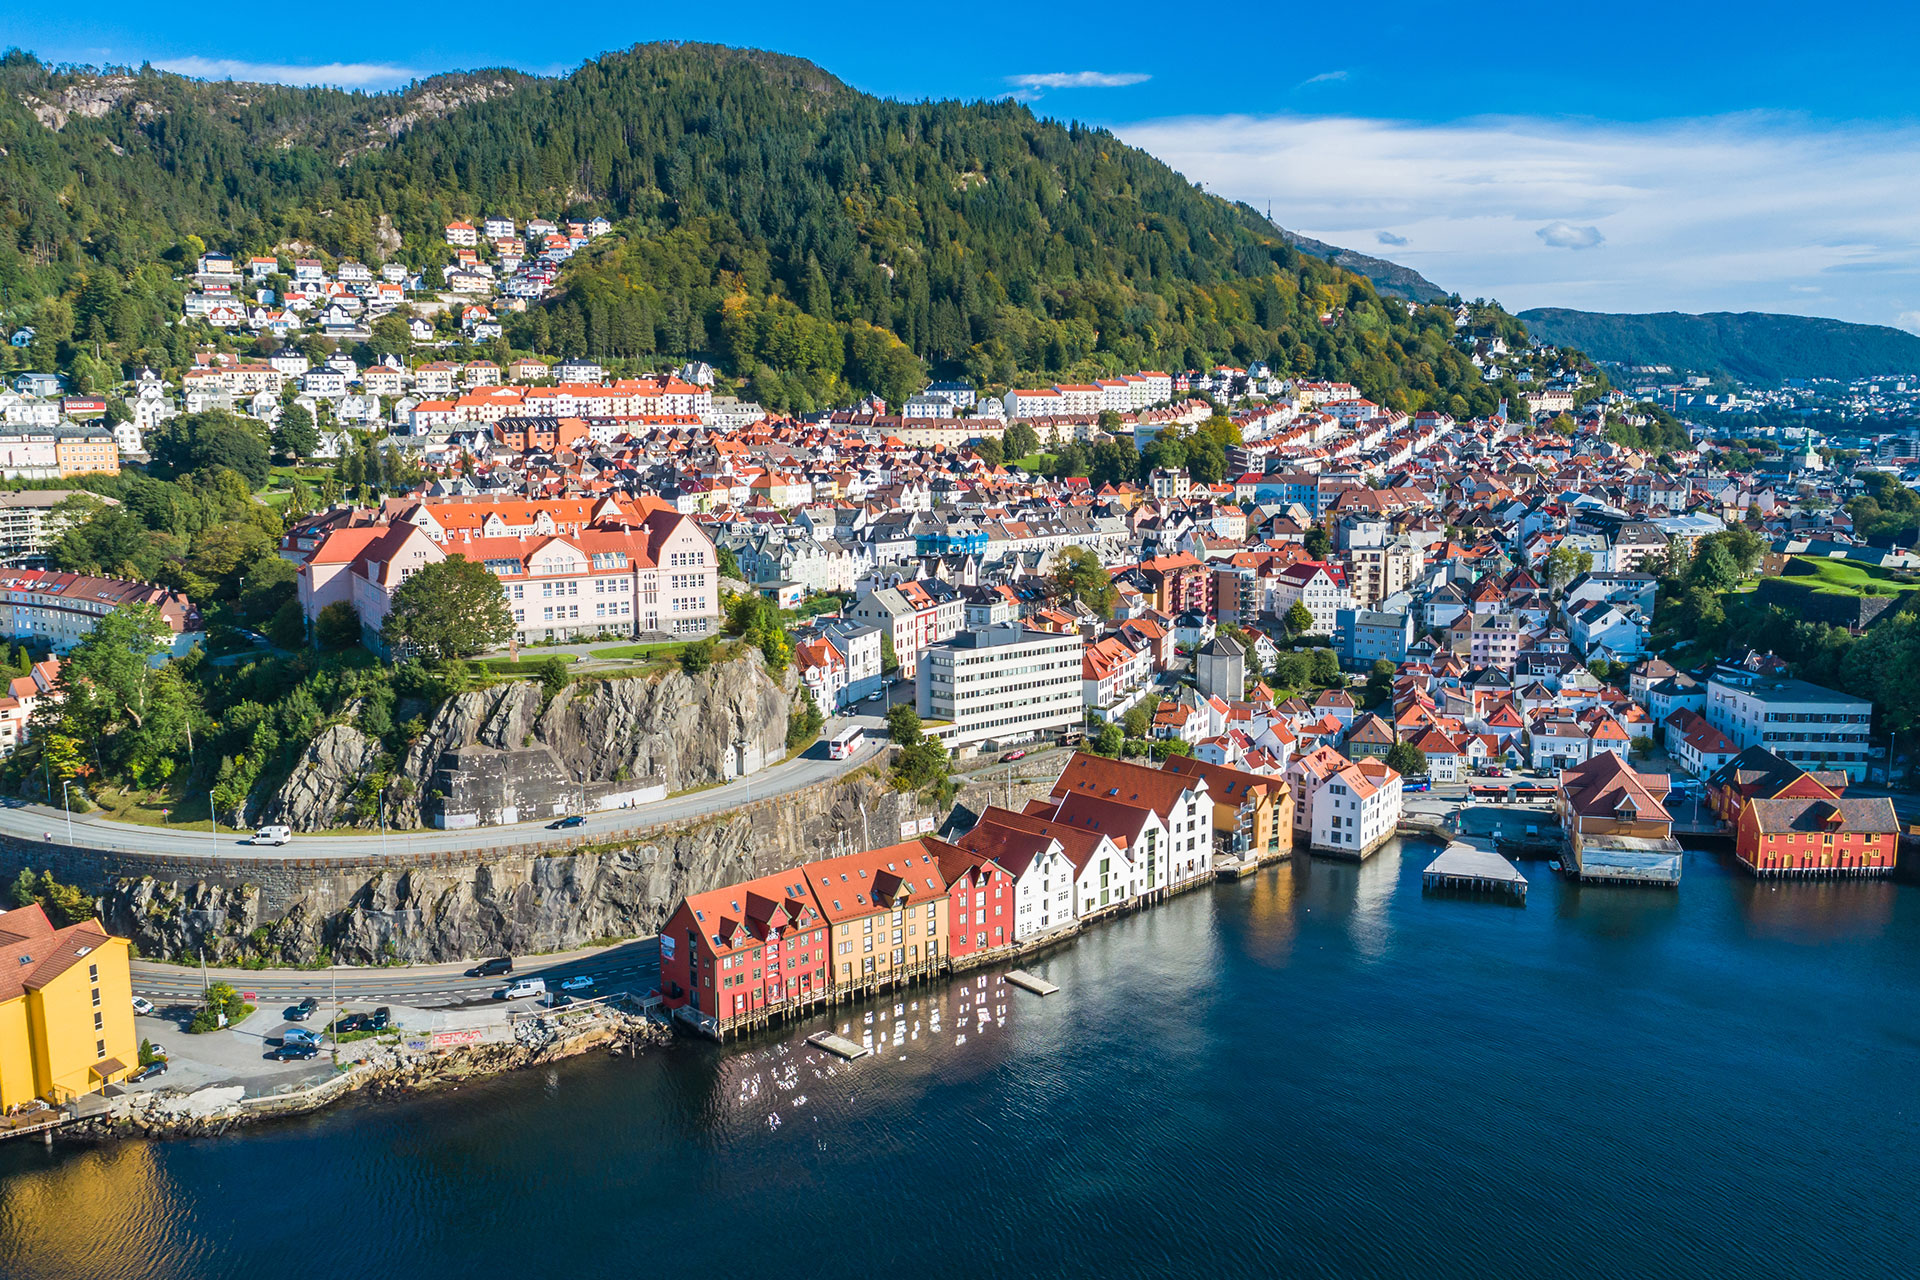 Bergen, Norway; Courtesy of Marius Dobilas/Shutterstock.com